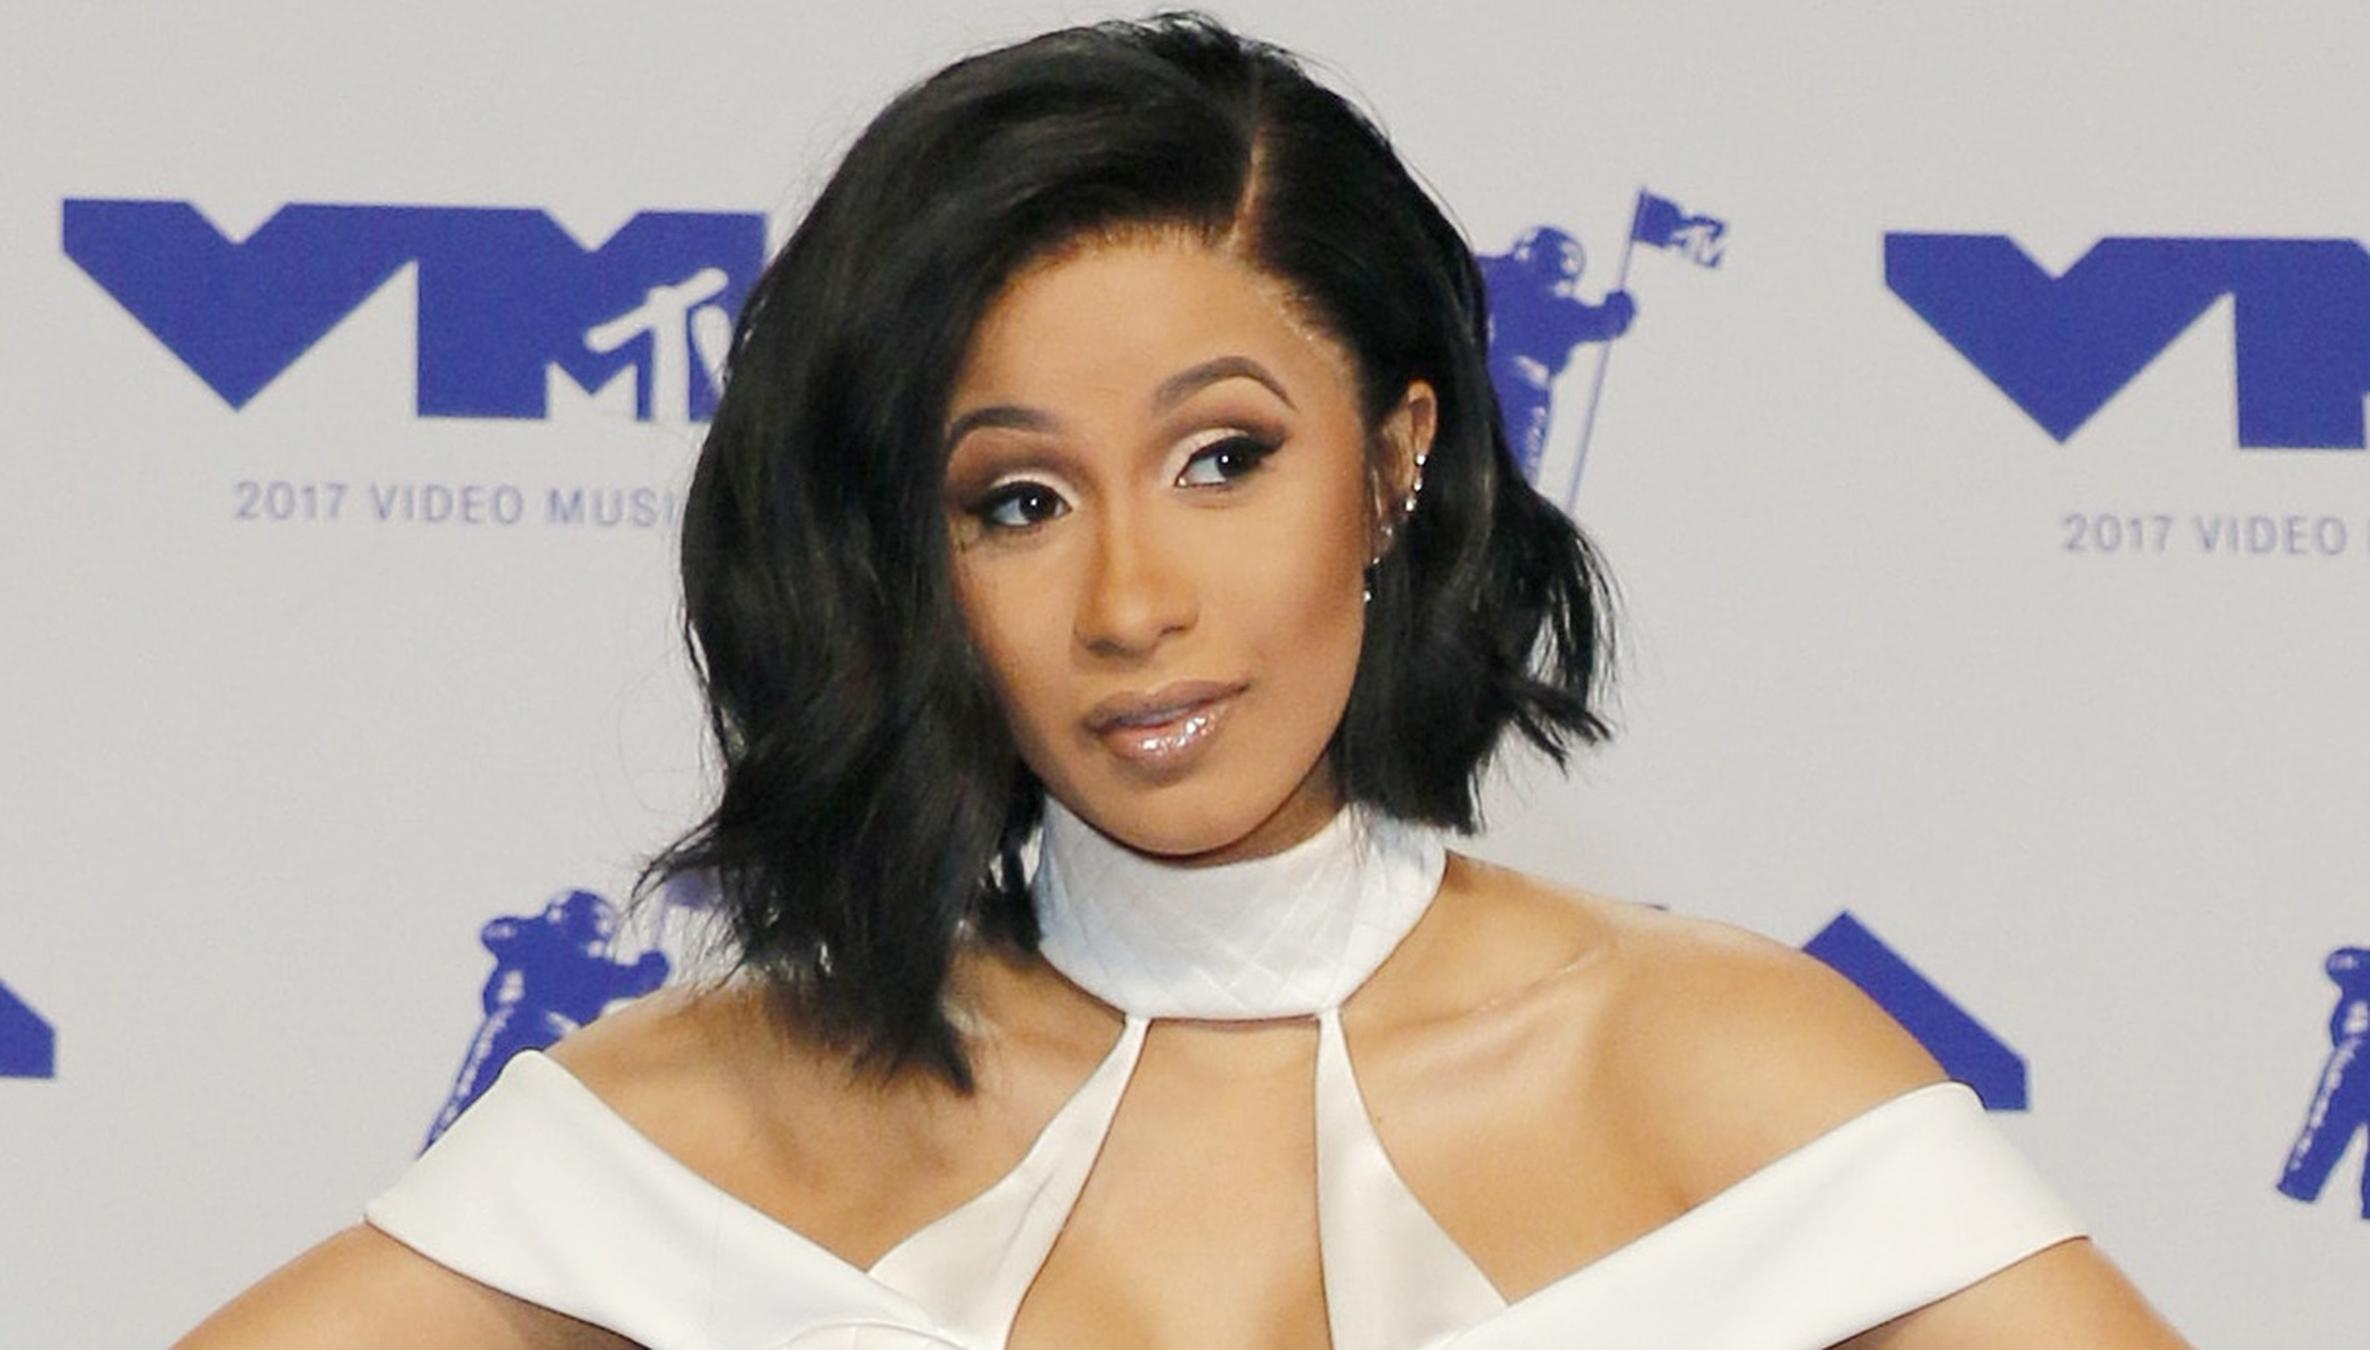 f1985888881e18 5 Things Actors Can Learn From Reality-Star-Turned-Hip-Hop-Superstar Cardi B